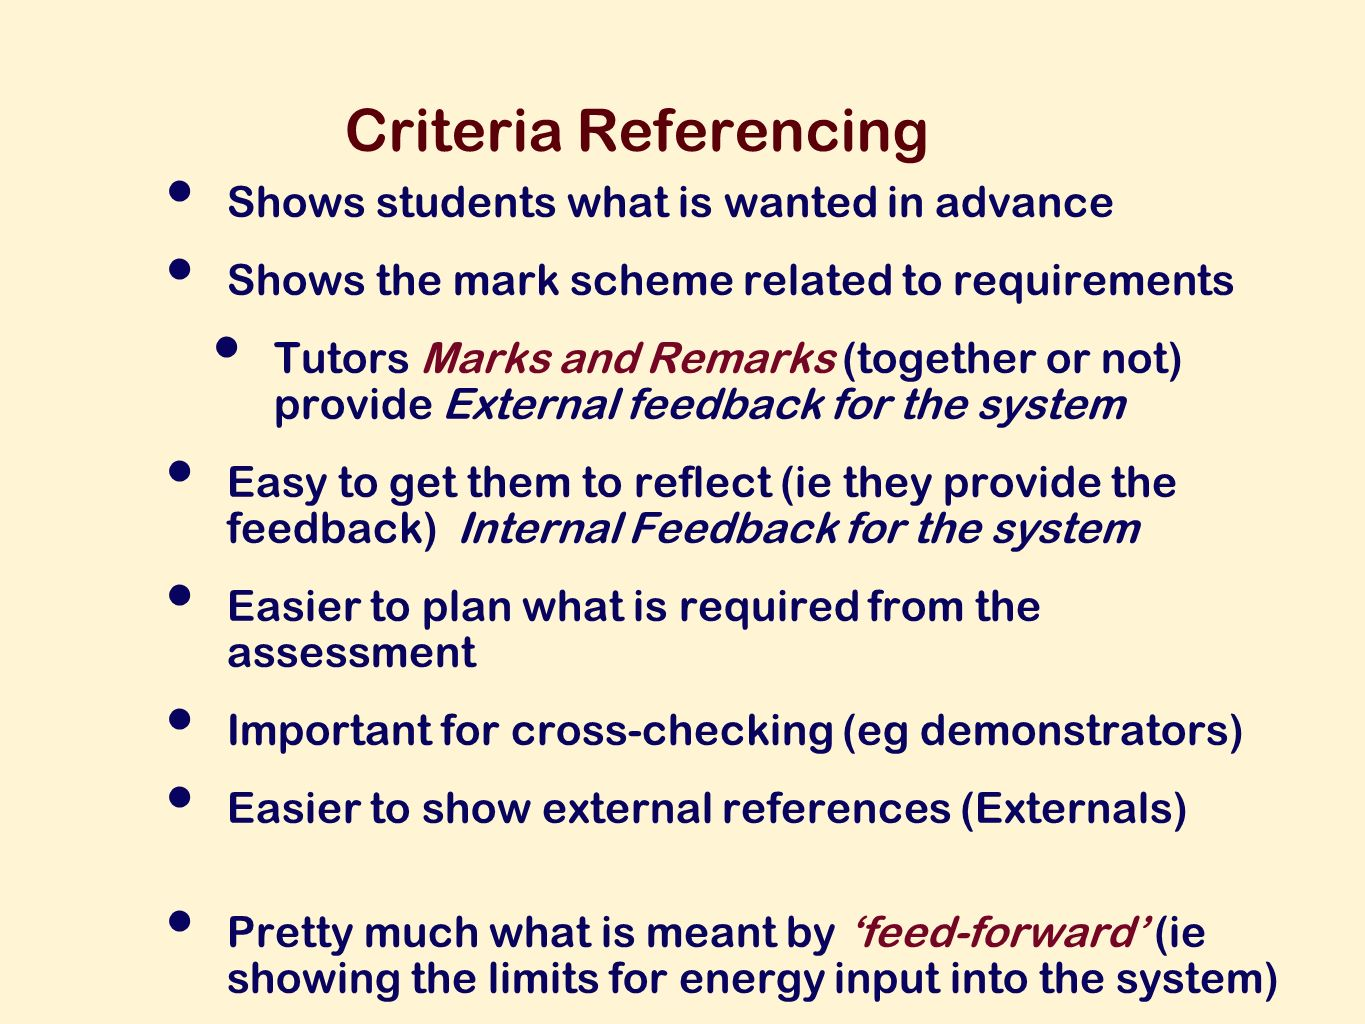 Criteria Referencing Shows students what is wanted in advance Shows the mark scheme related to requirements Tutors Marks and Remarks (together or not) provide External feedback for the system Easy to get them to reflect (ie they provide the feedback) Internal Feedback for the system Easier to plan what is required from the assessment Important for cross-checking (eg demonstrators) Easier to show external references (Externals) Pretty much what is meant by feed-forward (ie showing the limits for energy input into the system)